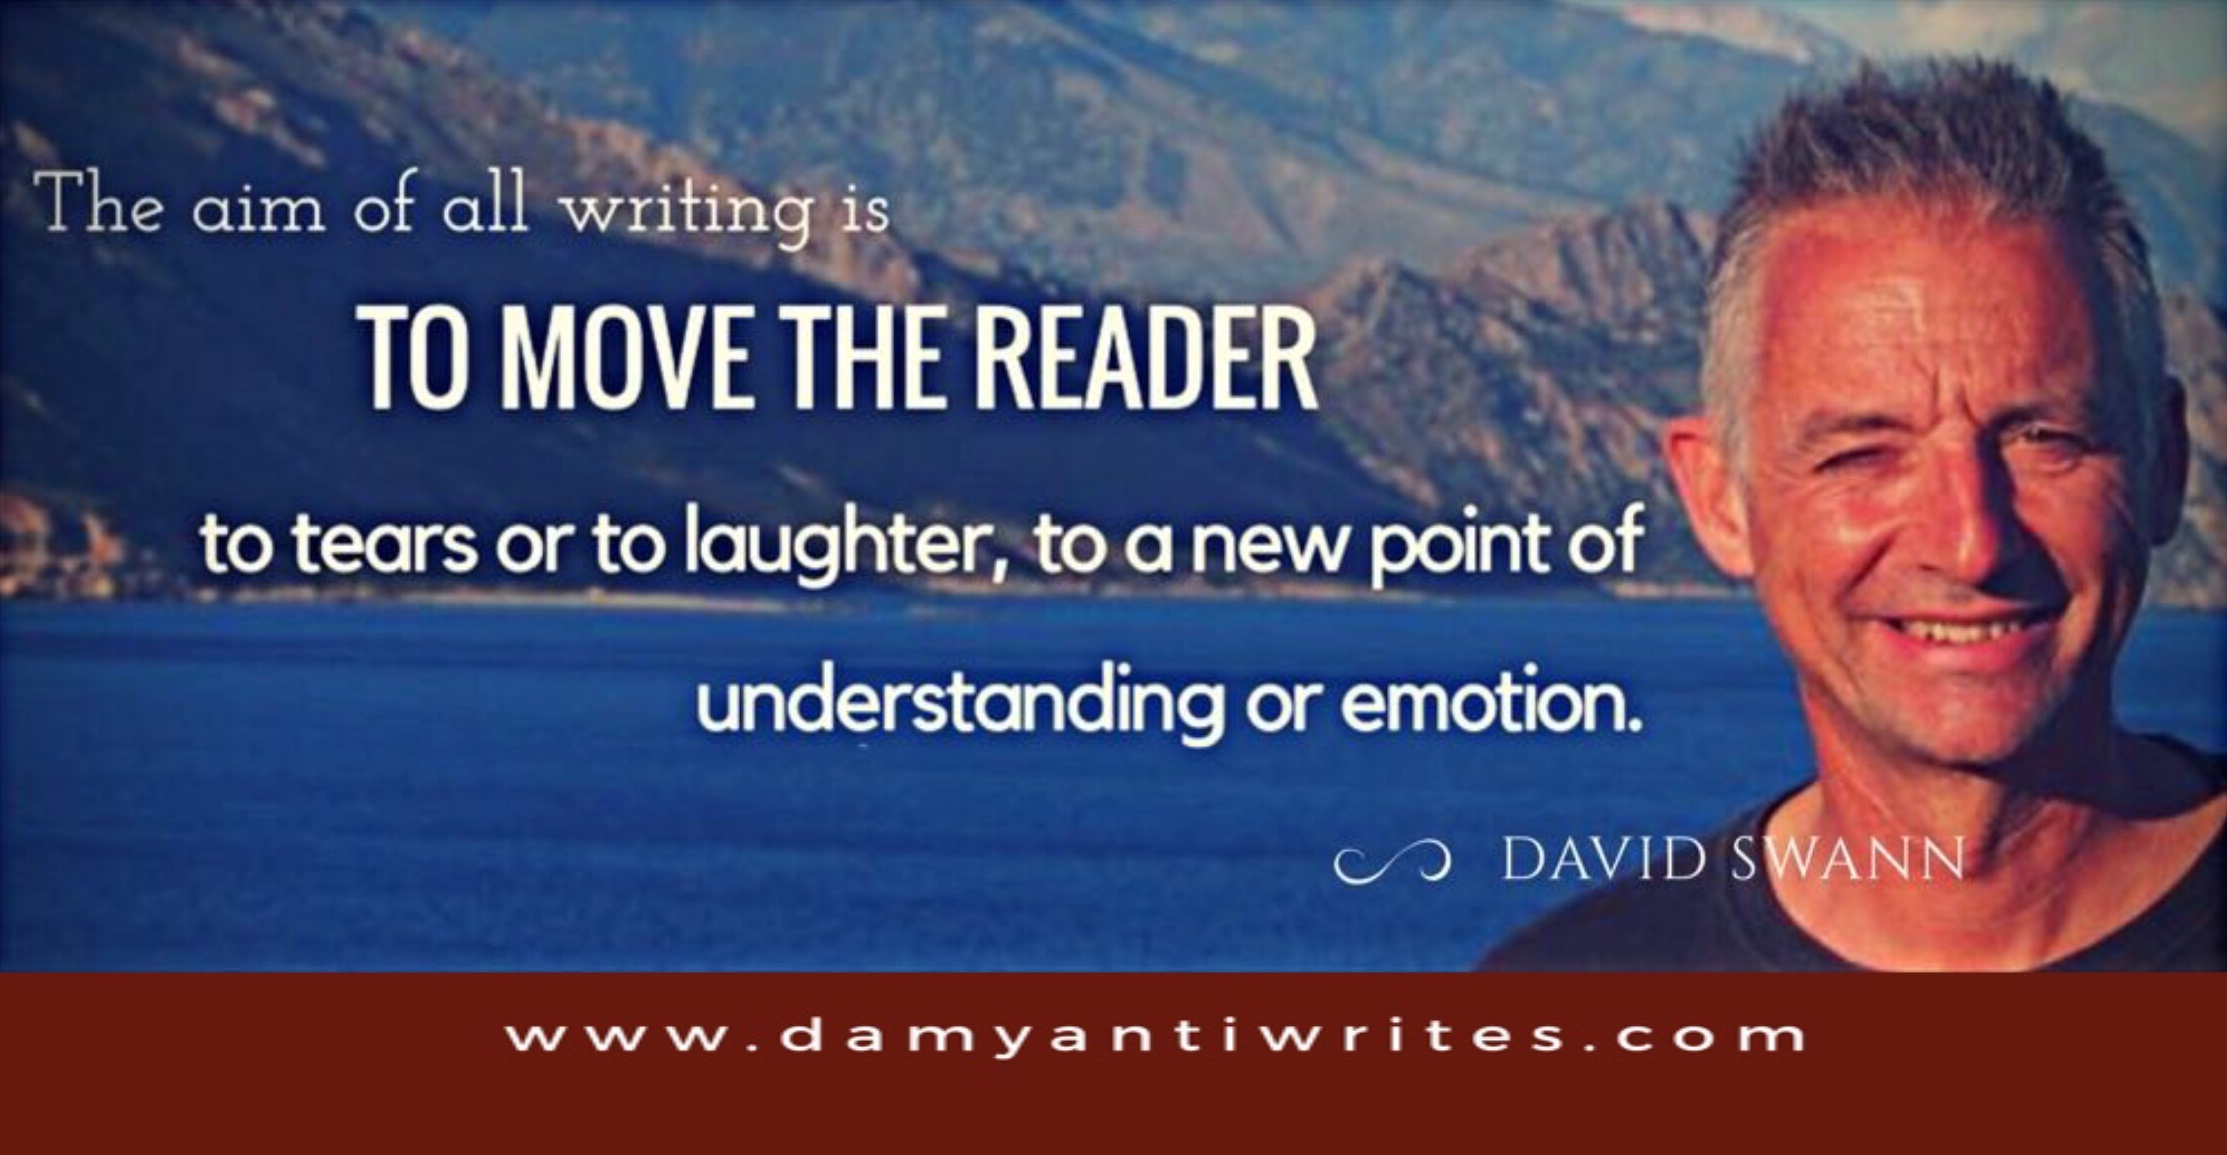 David Swann's Writing advice